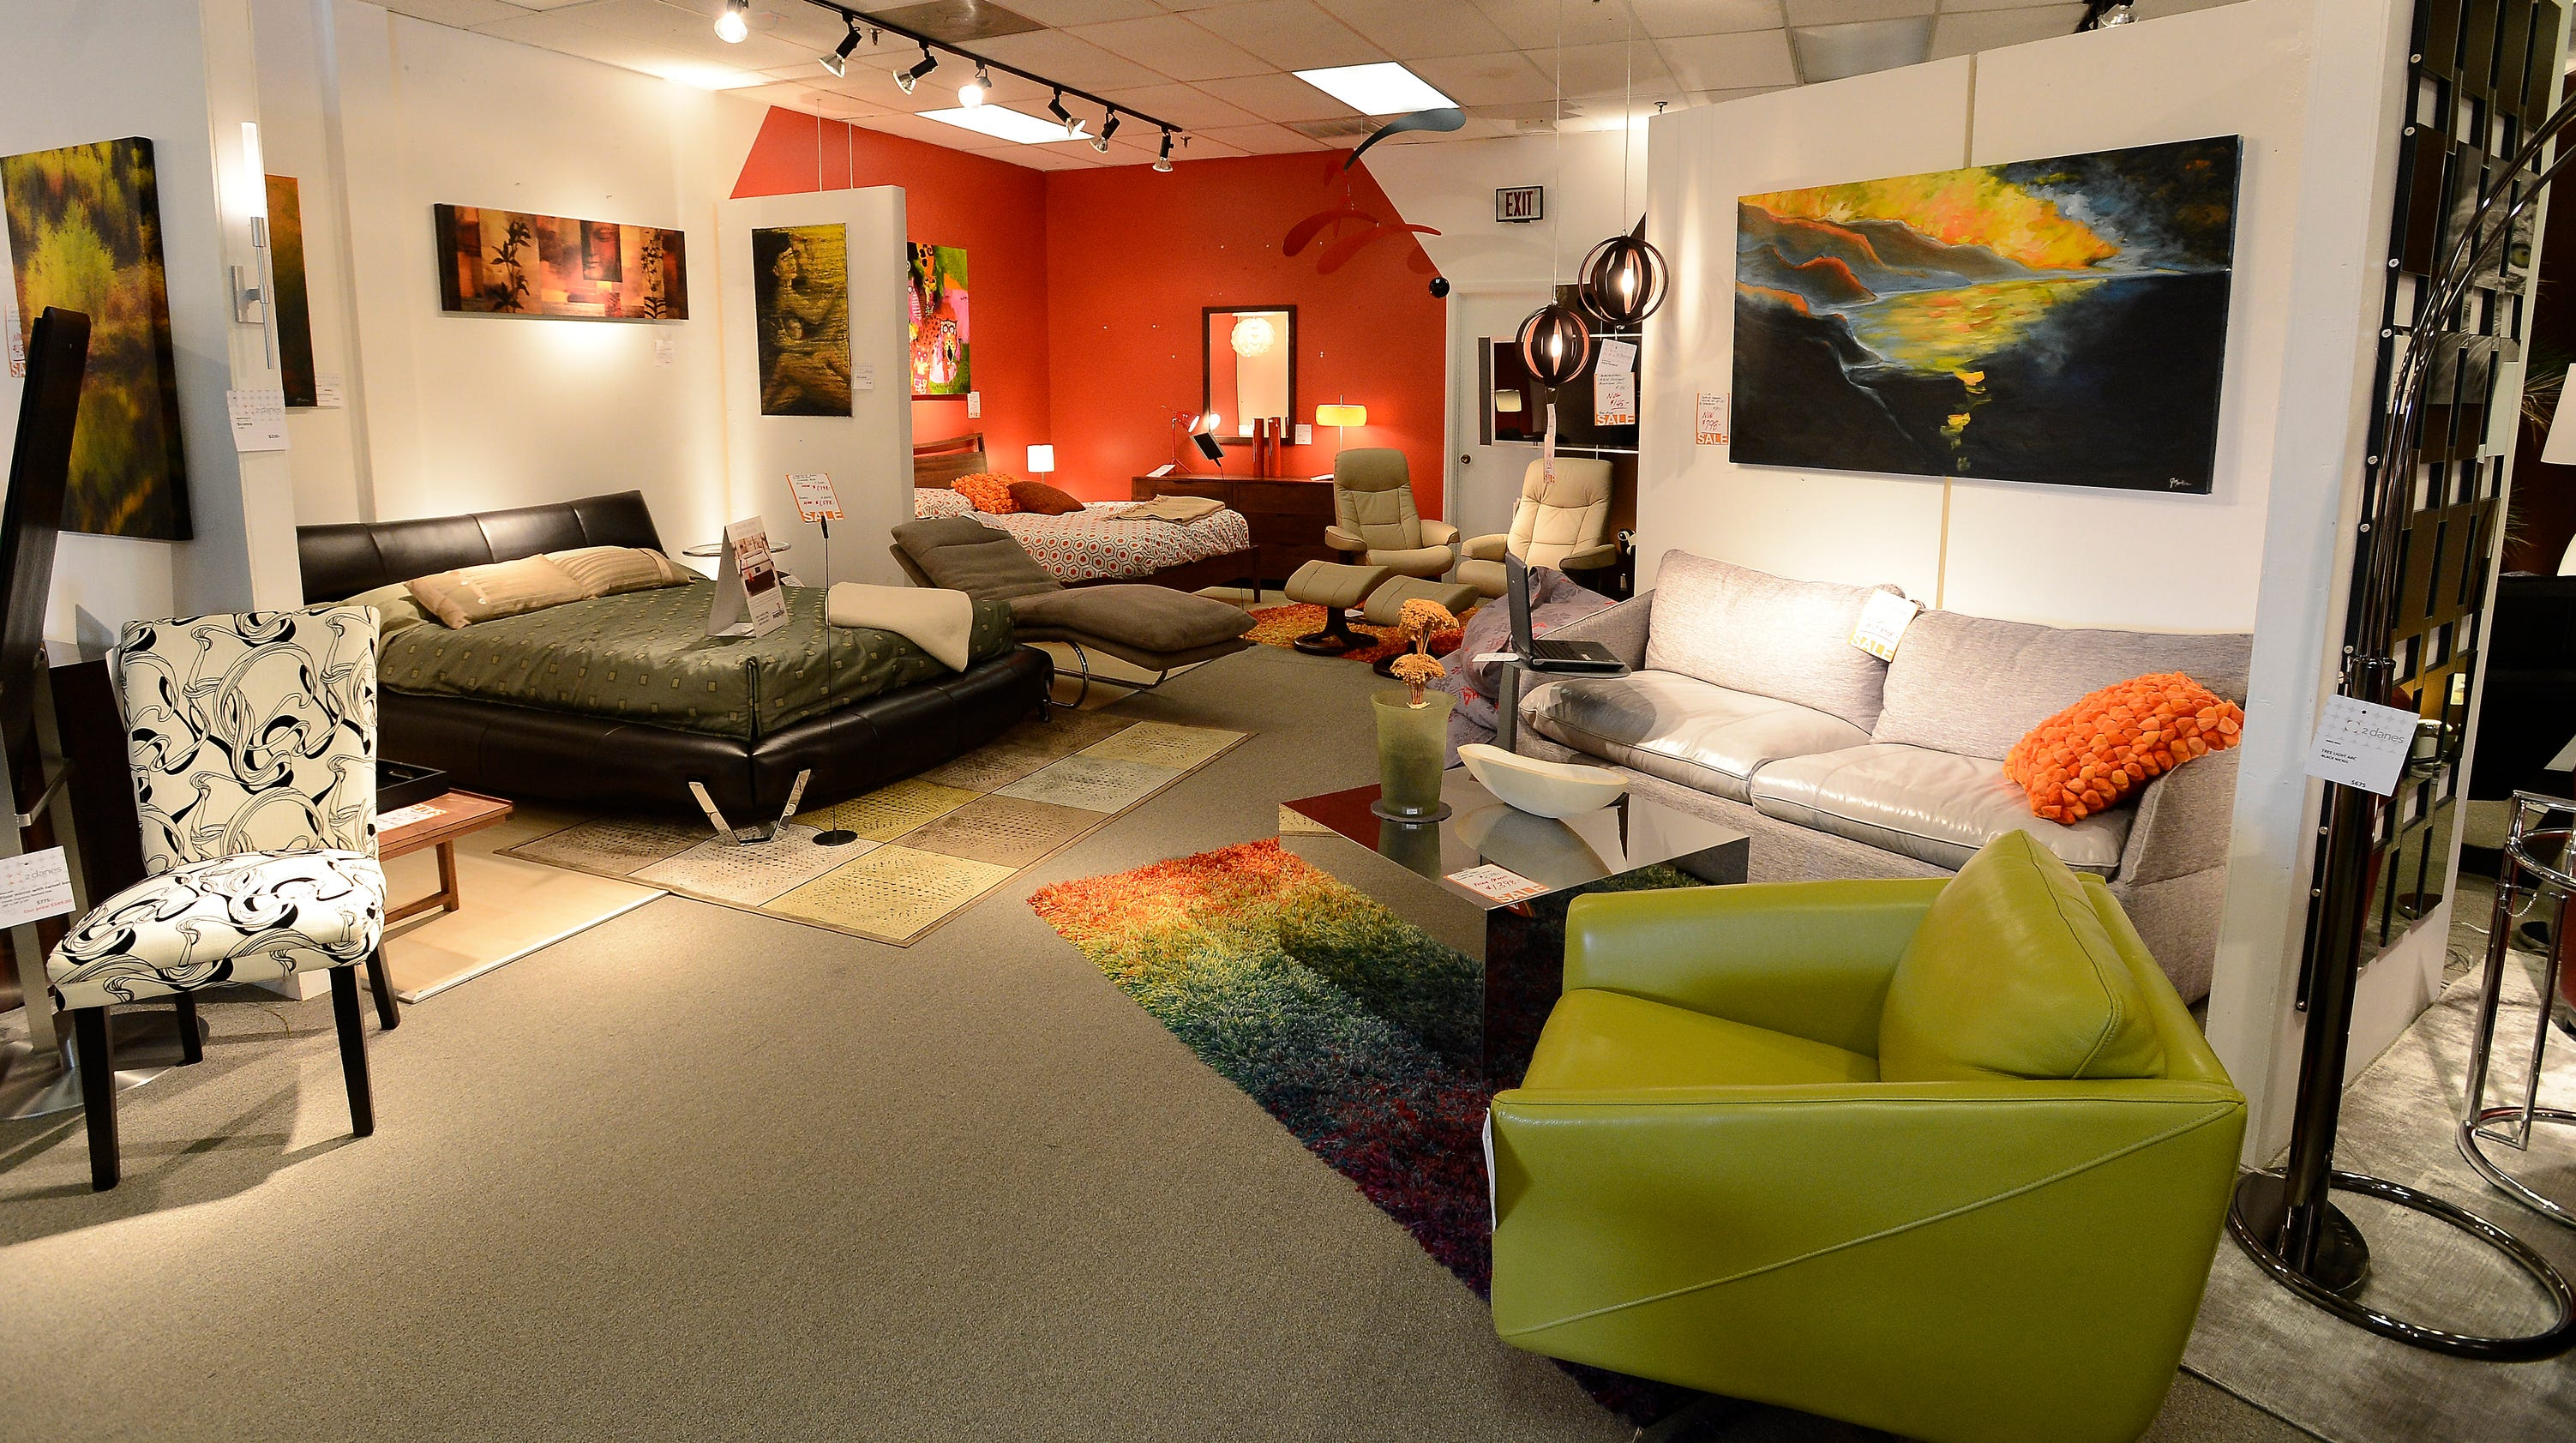 Furniture Design Nashville 10 fabulous nashville-area furniture stores to help you redecorate